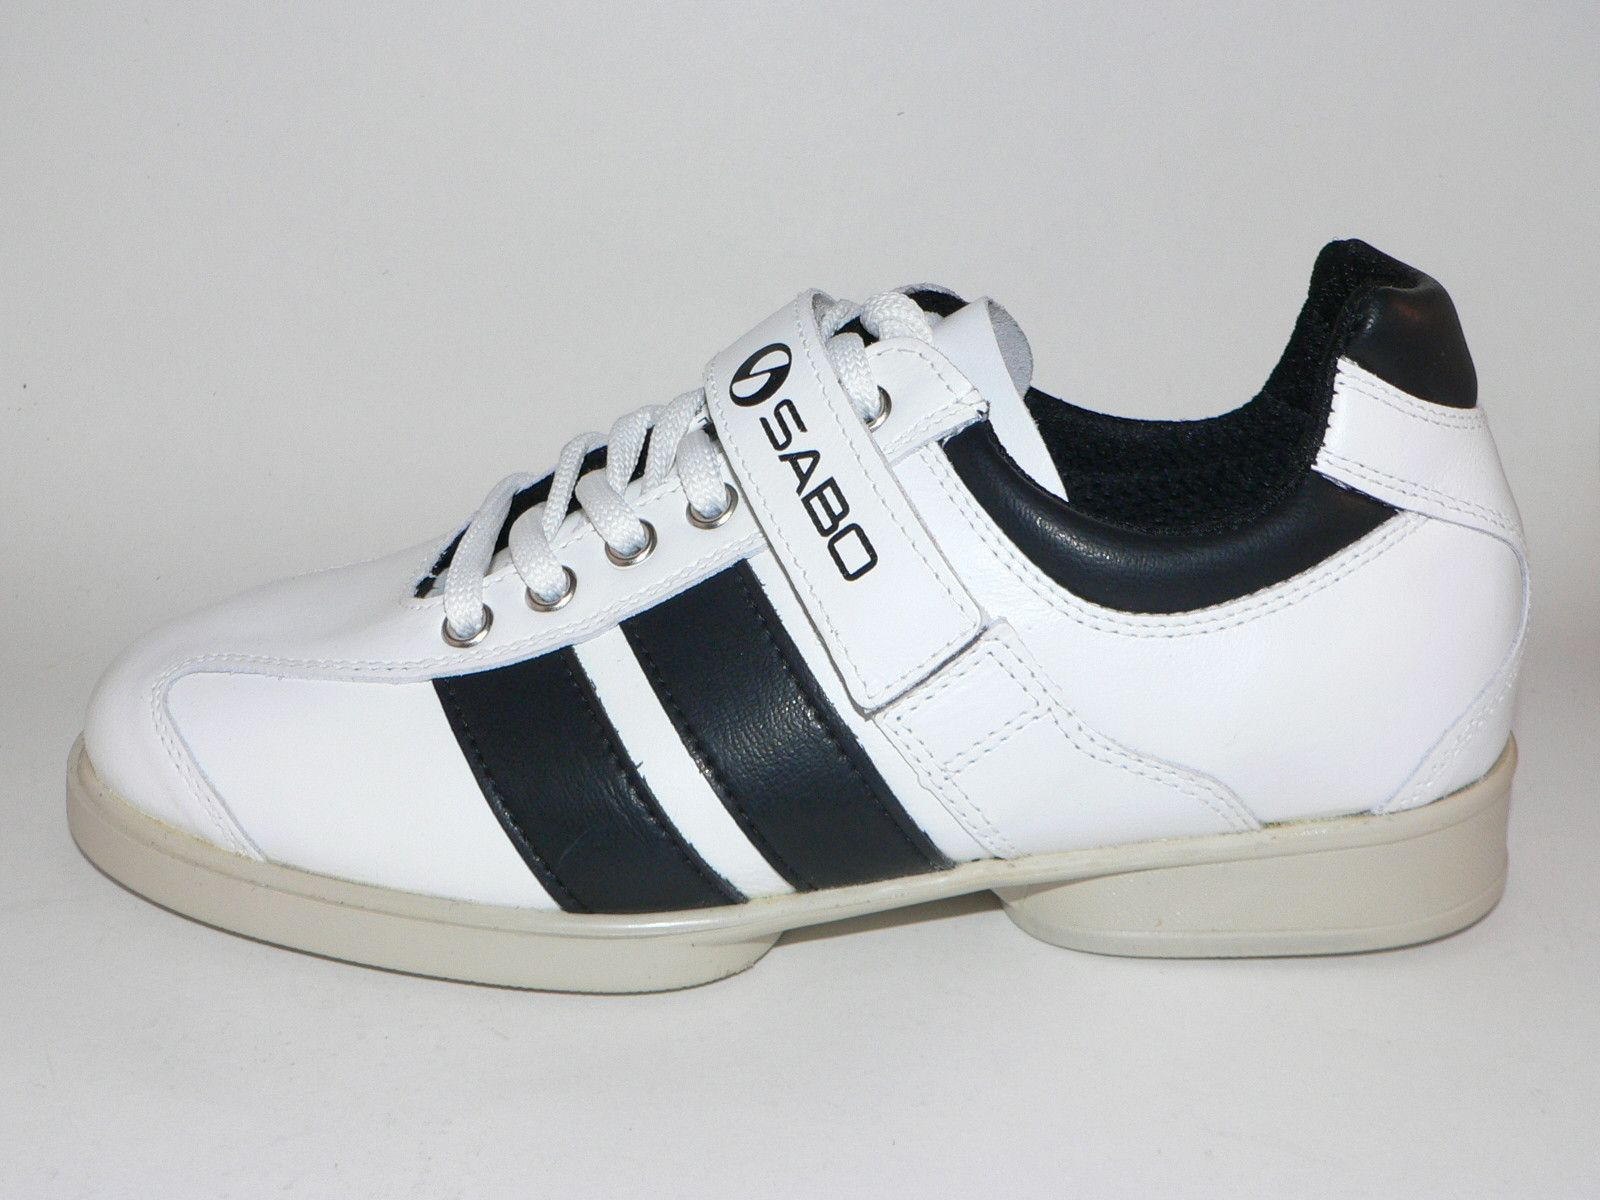 90ace2640178 White SABO weightlifting shoes. Now available in the USA